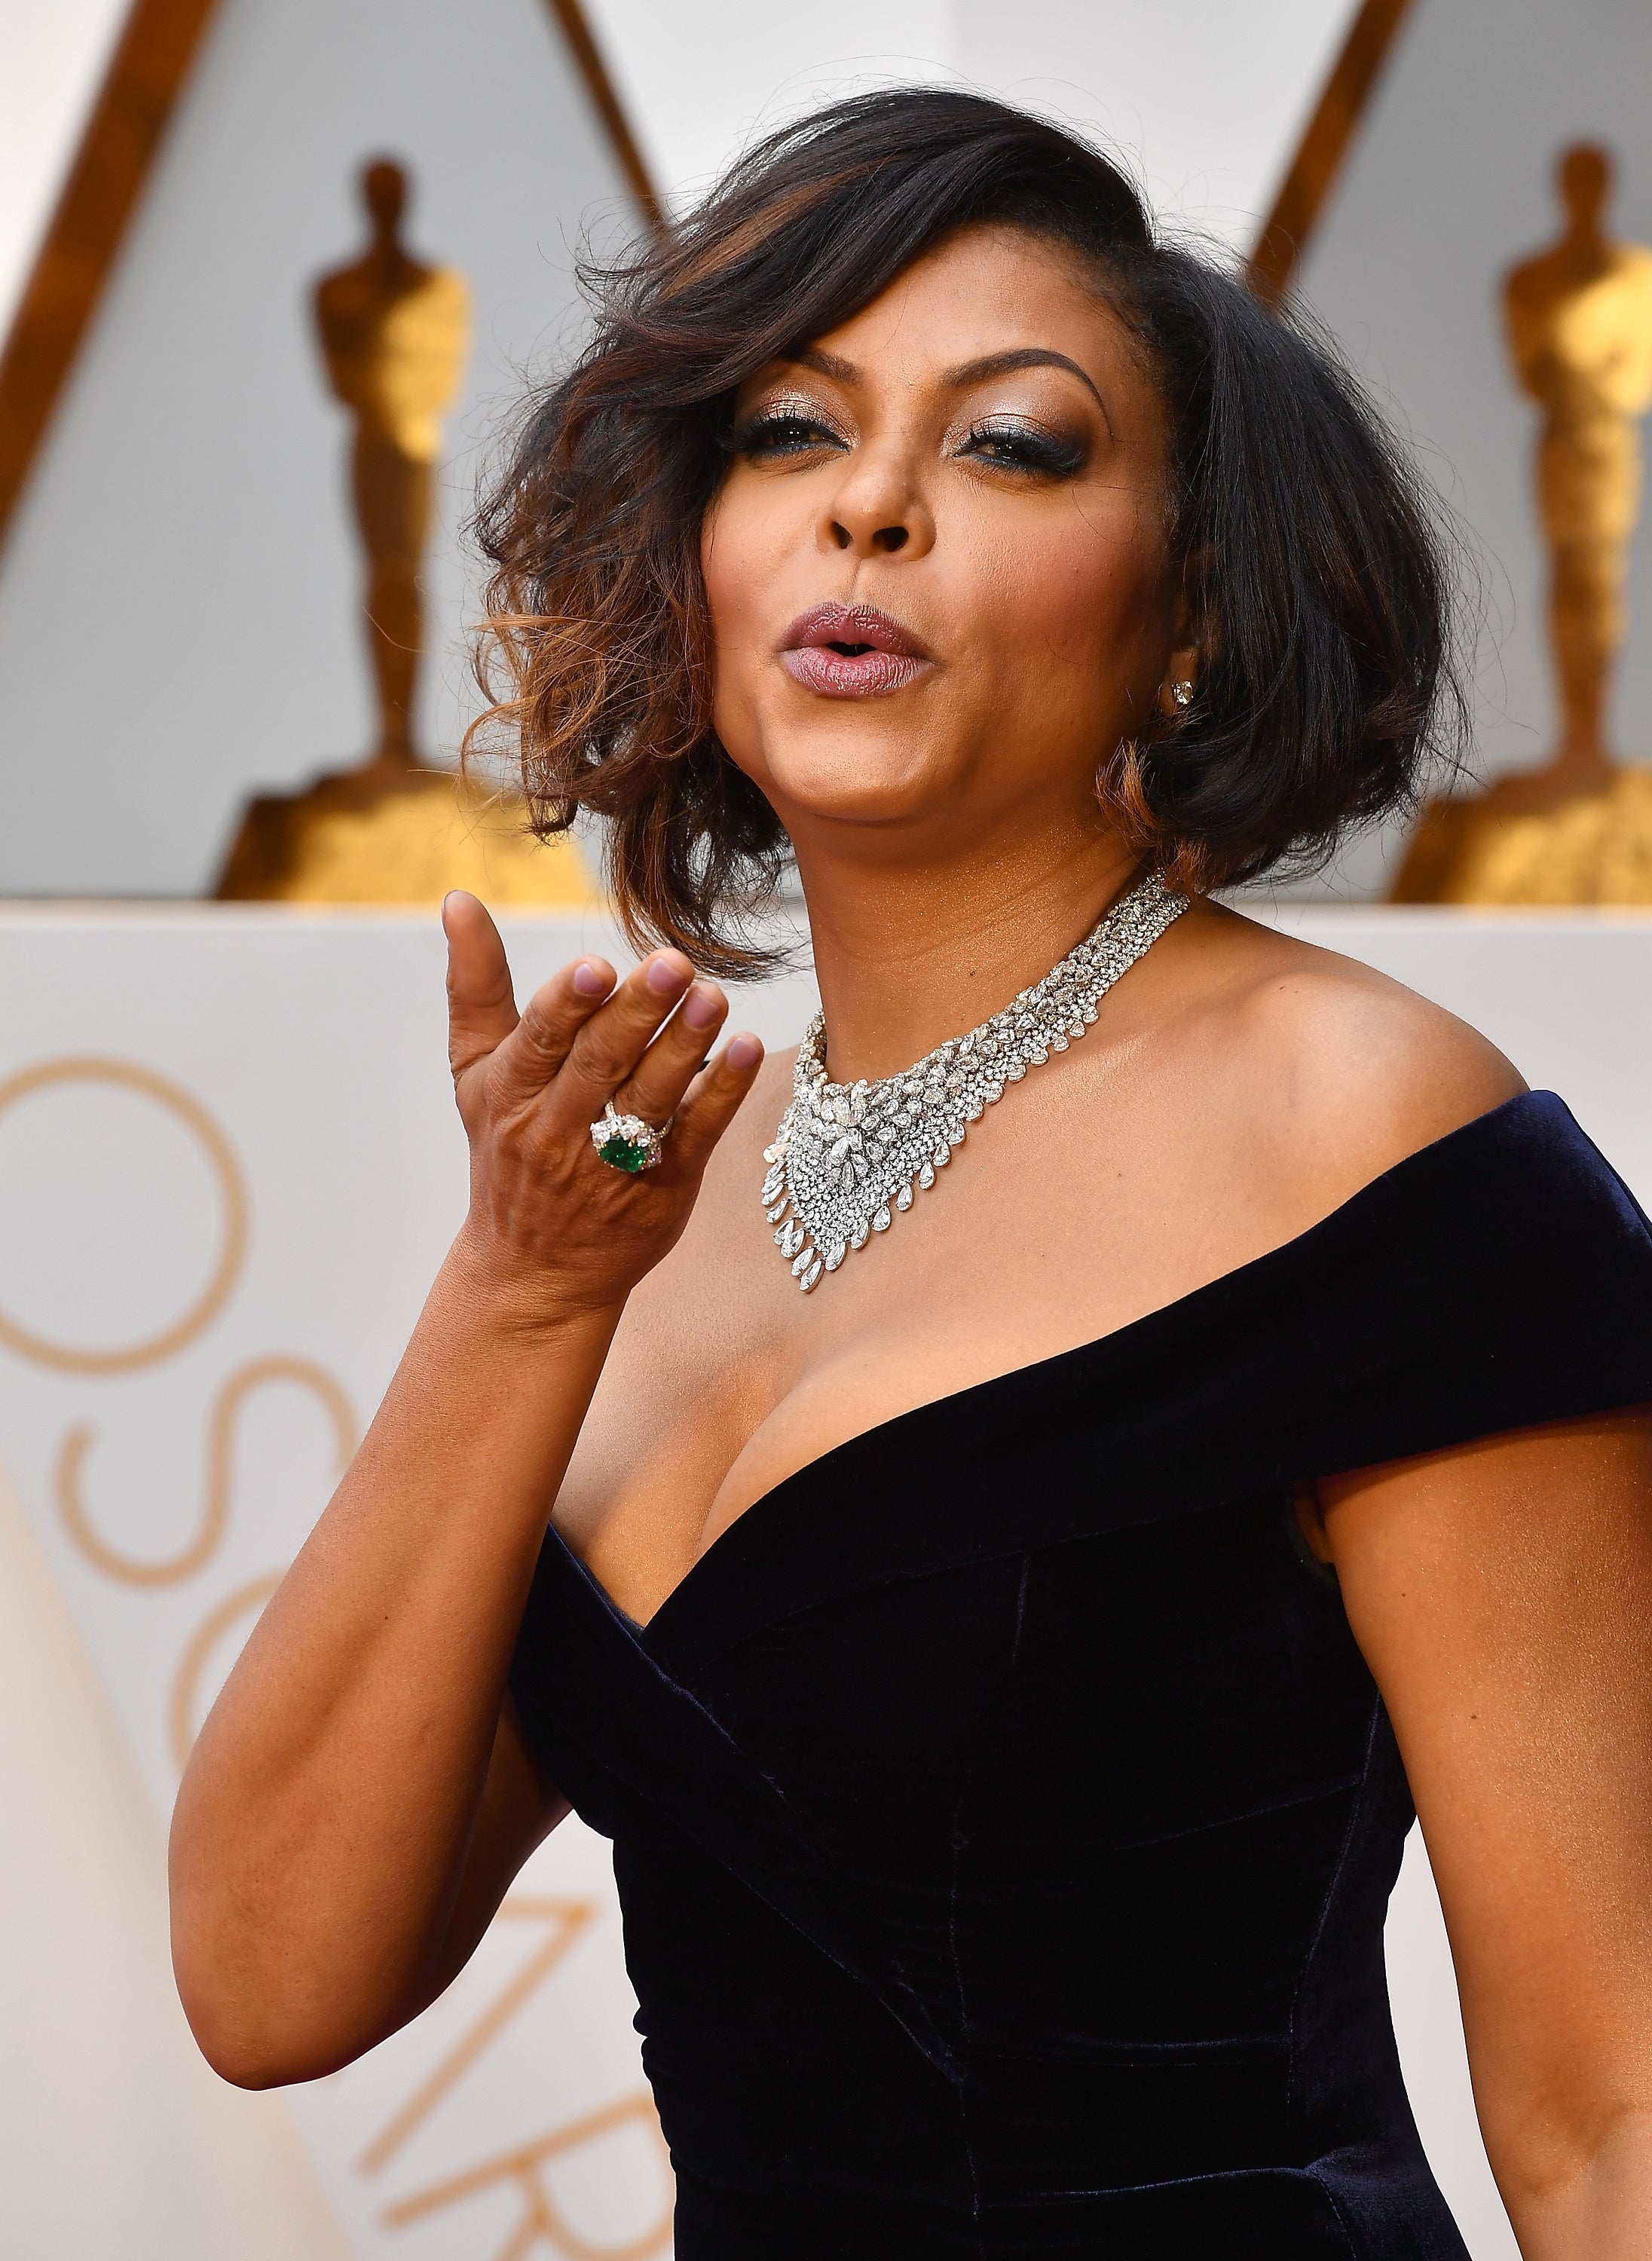 Taraji P. Henson Pays Tribute to Hidden Figures 'Selfless Heroes' at Oscars: 'These Women Changed the Course of History'